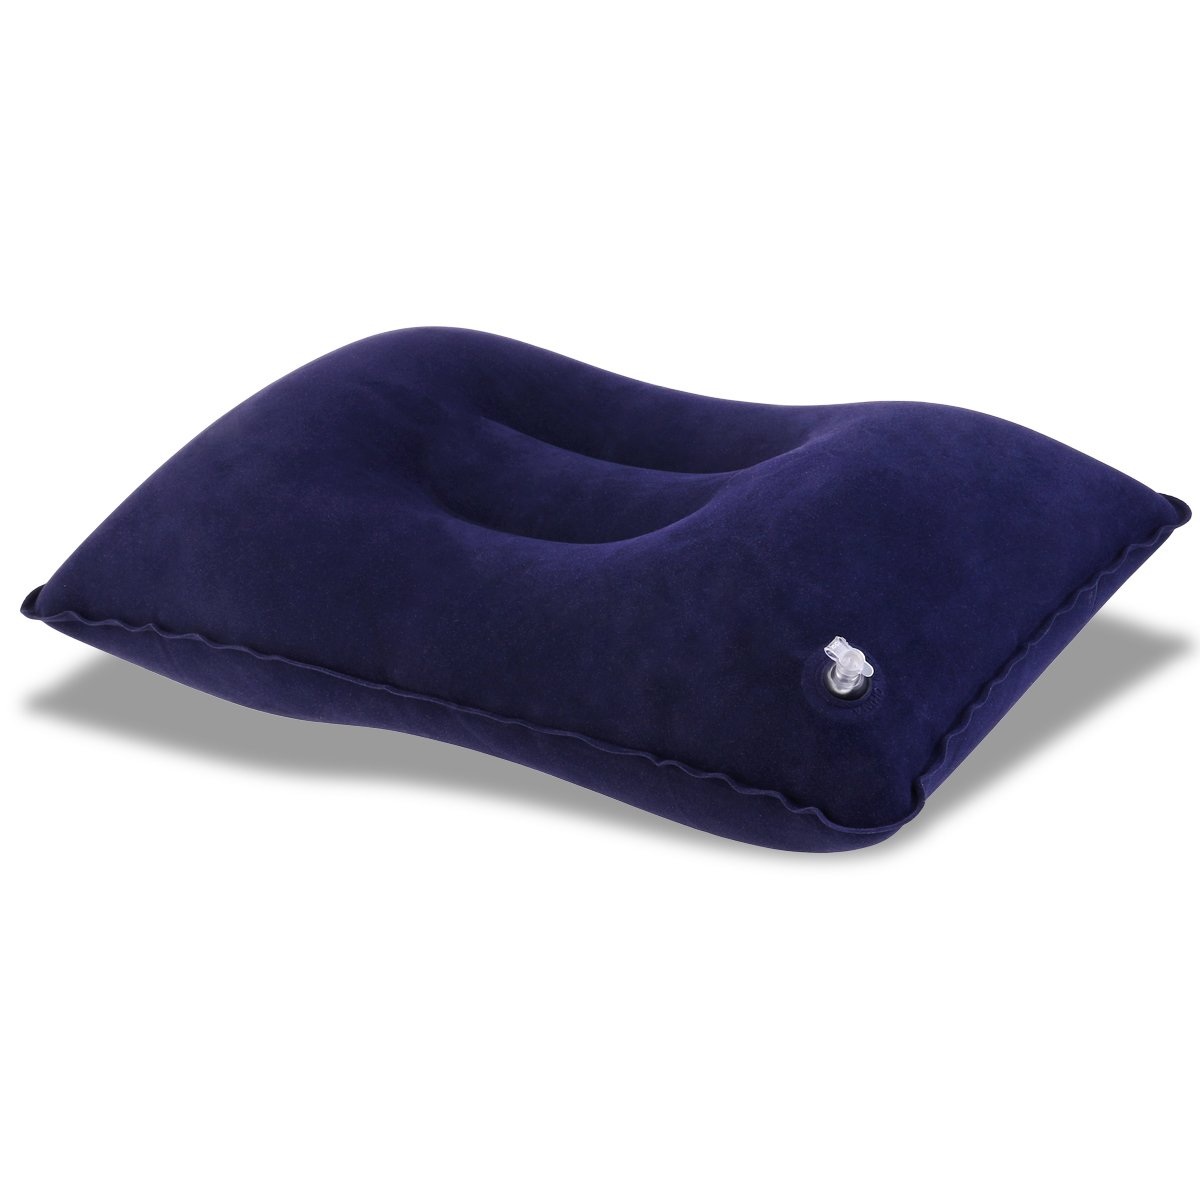 Dark Blue NUOLUX Inflatable Pillow Super-thick Flocking Fabric Portable Travel Pillow for Outdoor Activities